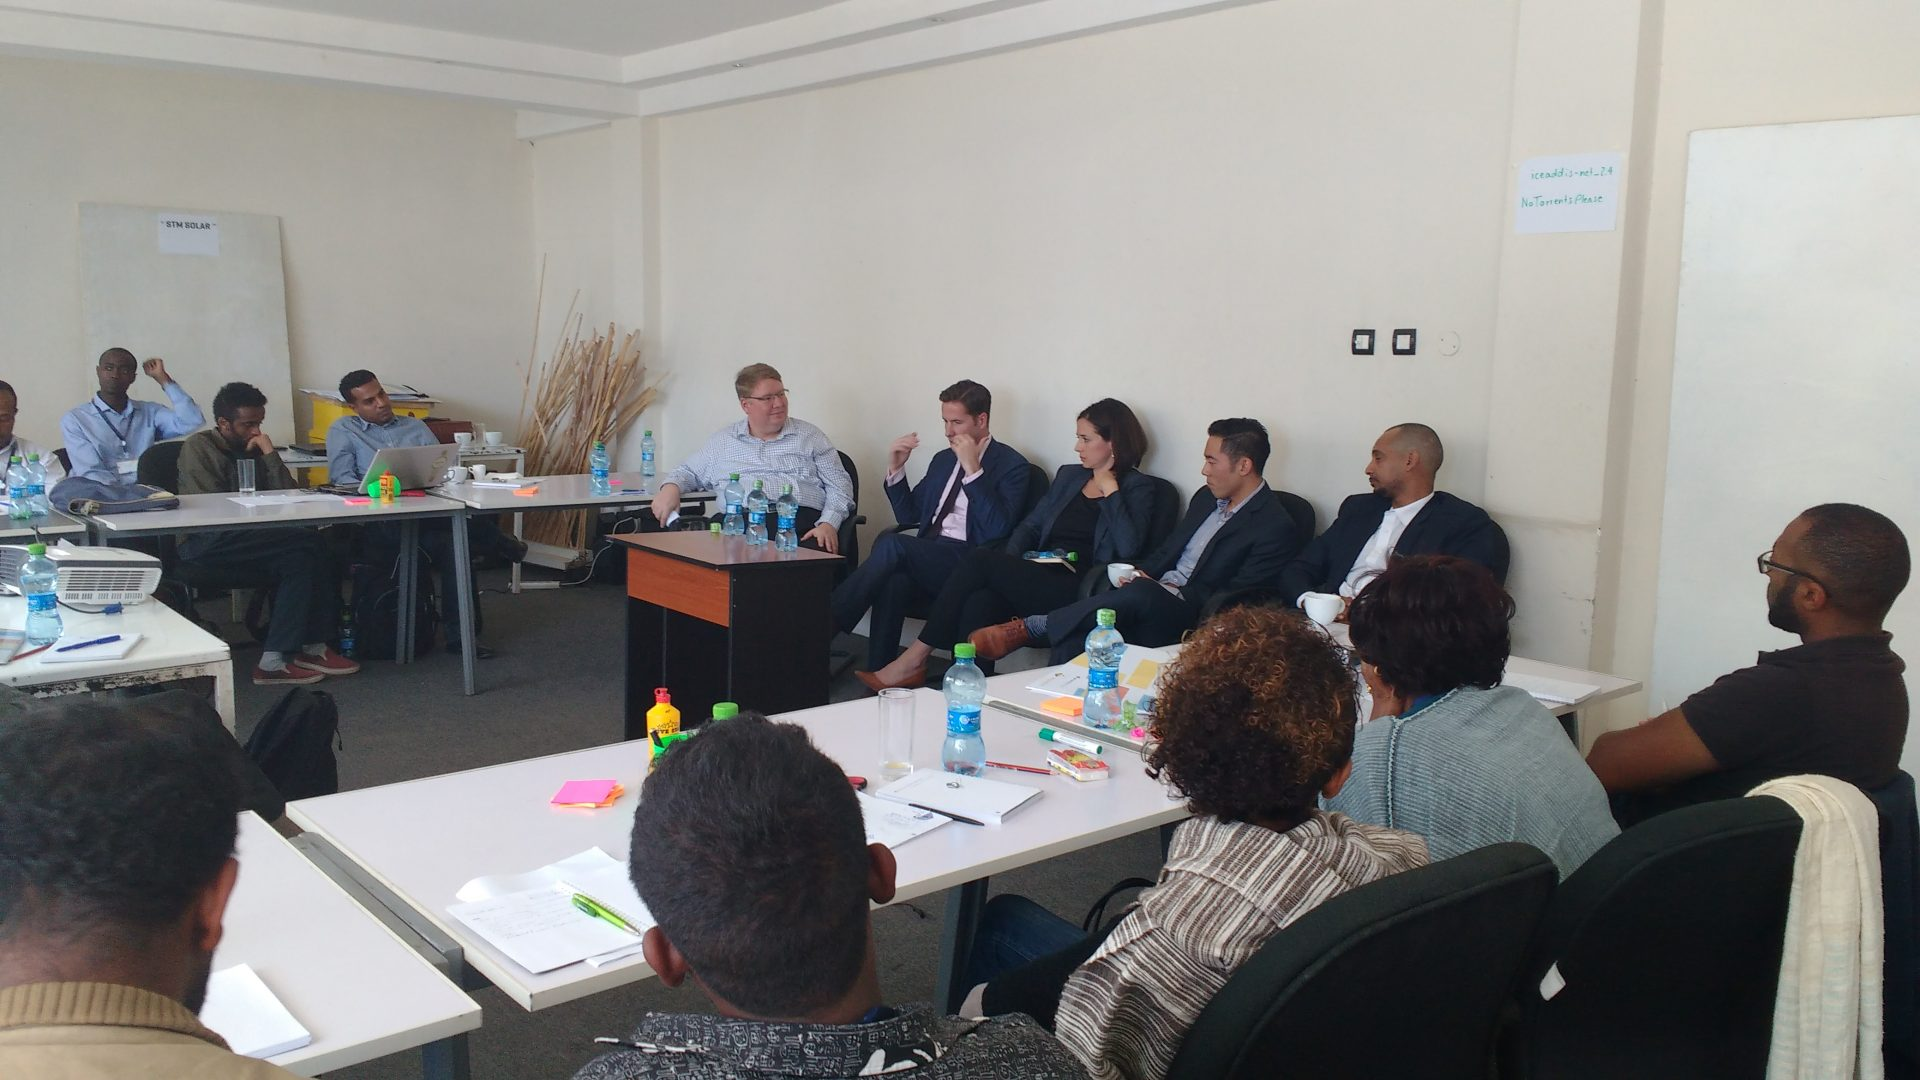 An investor's panel being led by GrowthAfrica Founder and CEO Johnni Kjelsgaard.